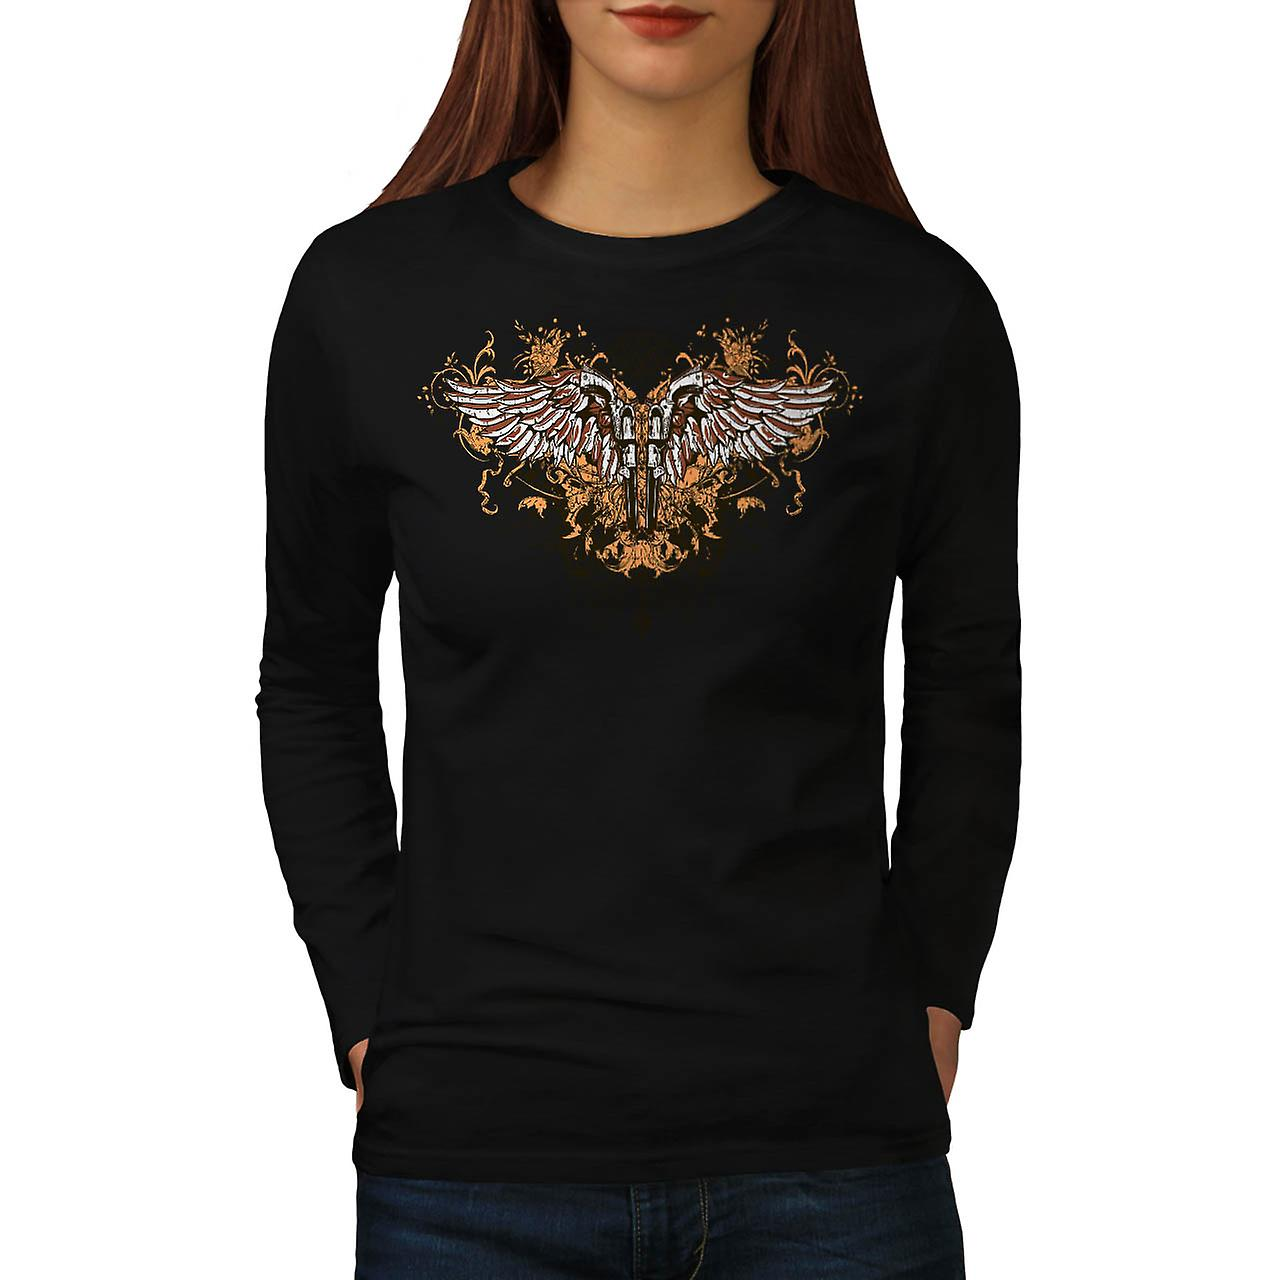 Pistol Gun Angel Wing Gang Land Women Black Long Sleeve T-shirt | Wellcoda